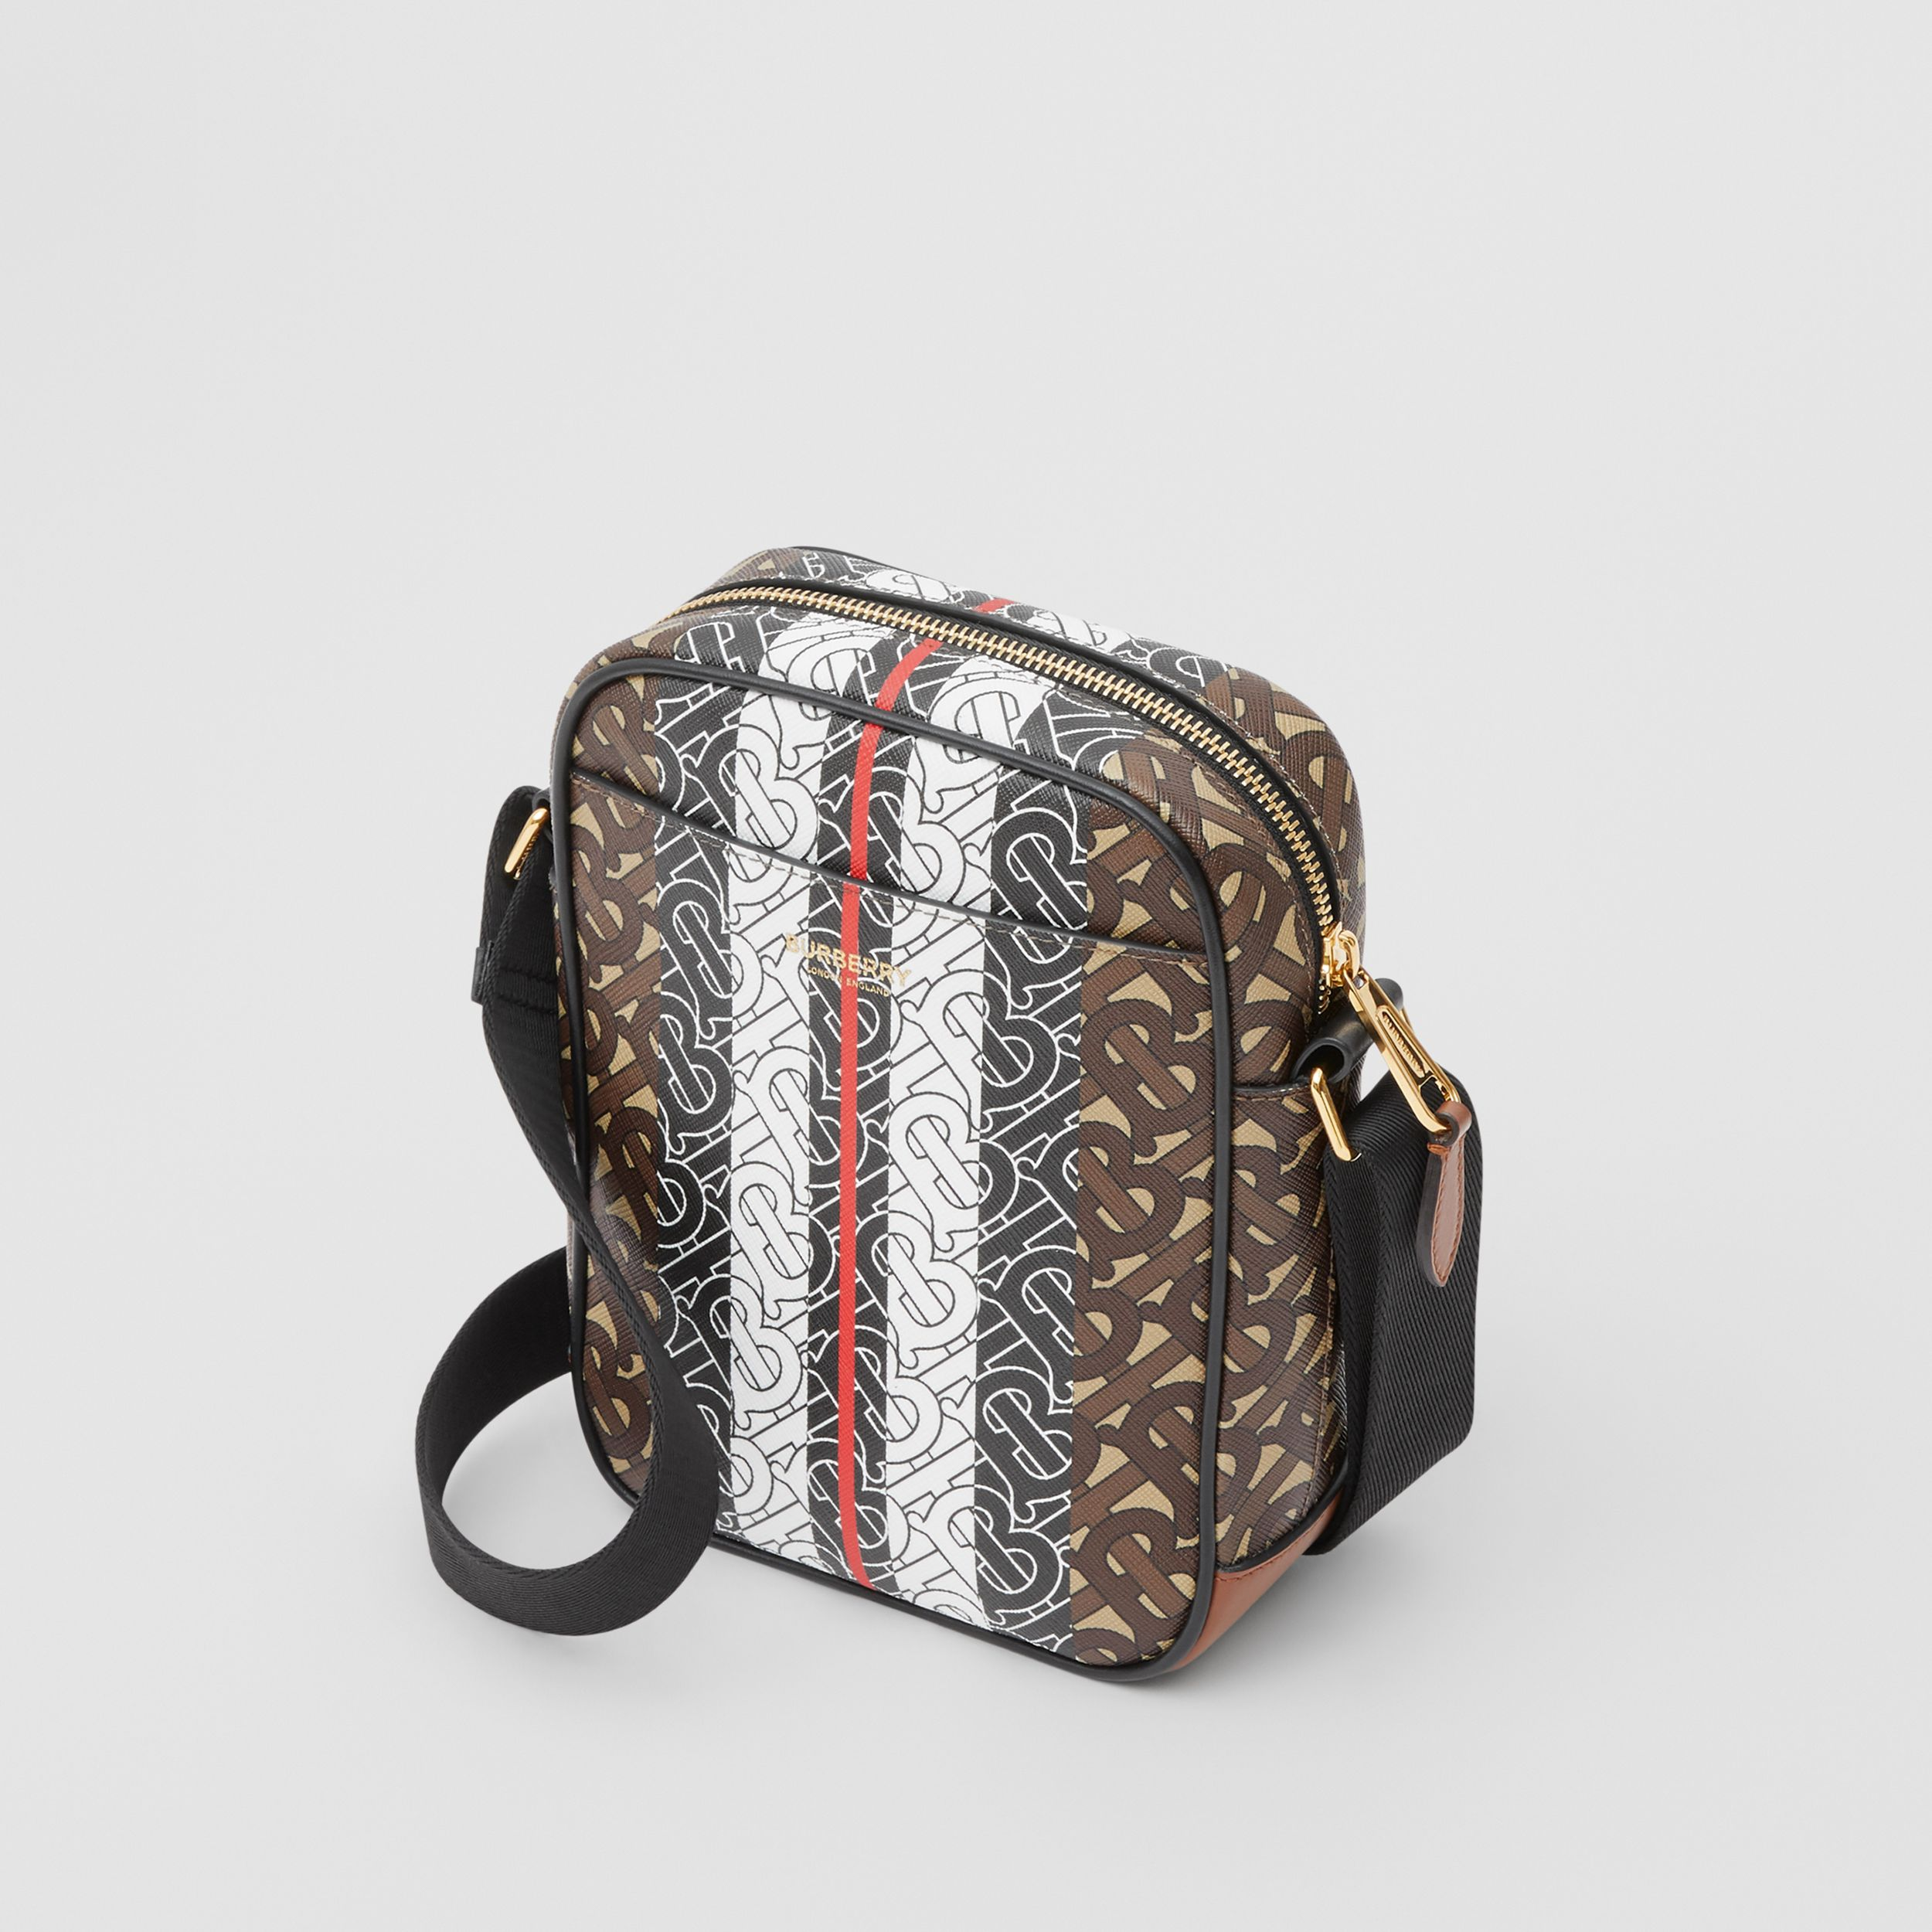 Monogram Stripe Print E-canvas Crossbody Bag in Bridle Brown - Men | Burberry - 4